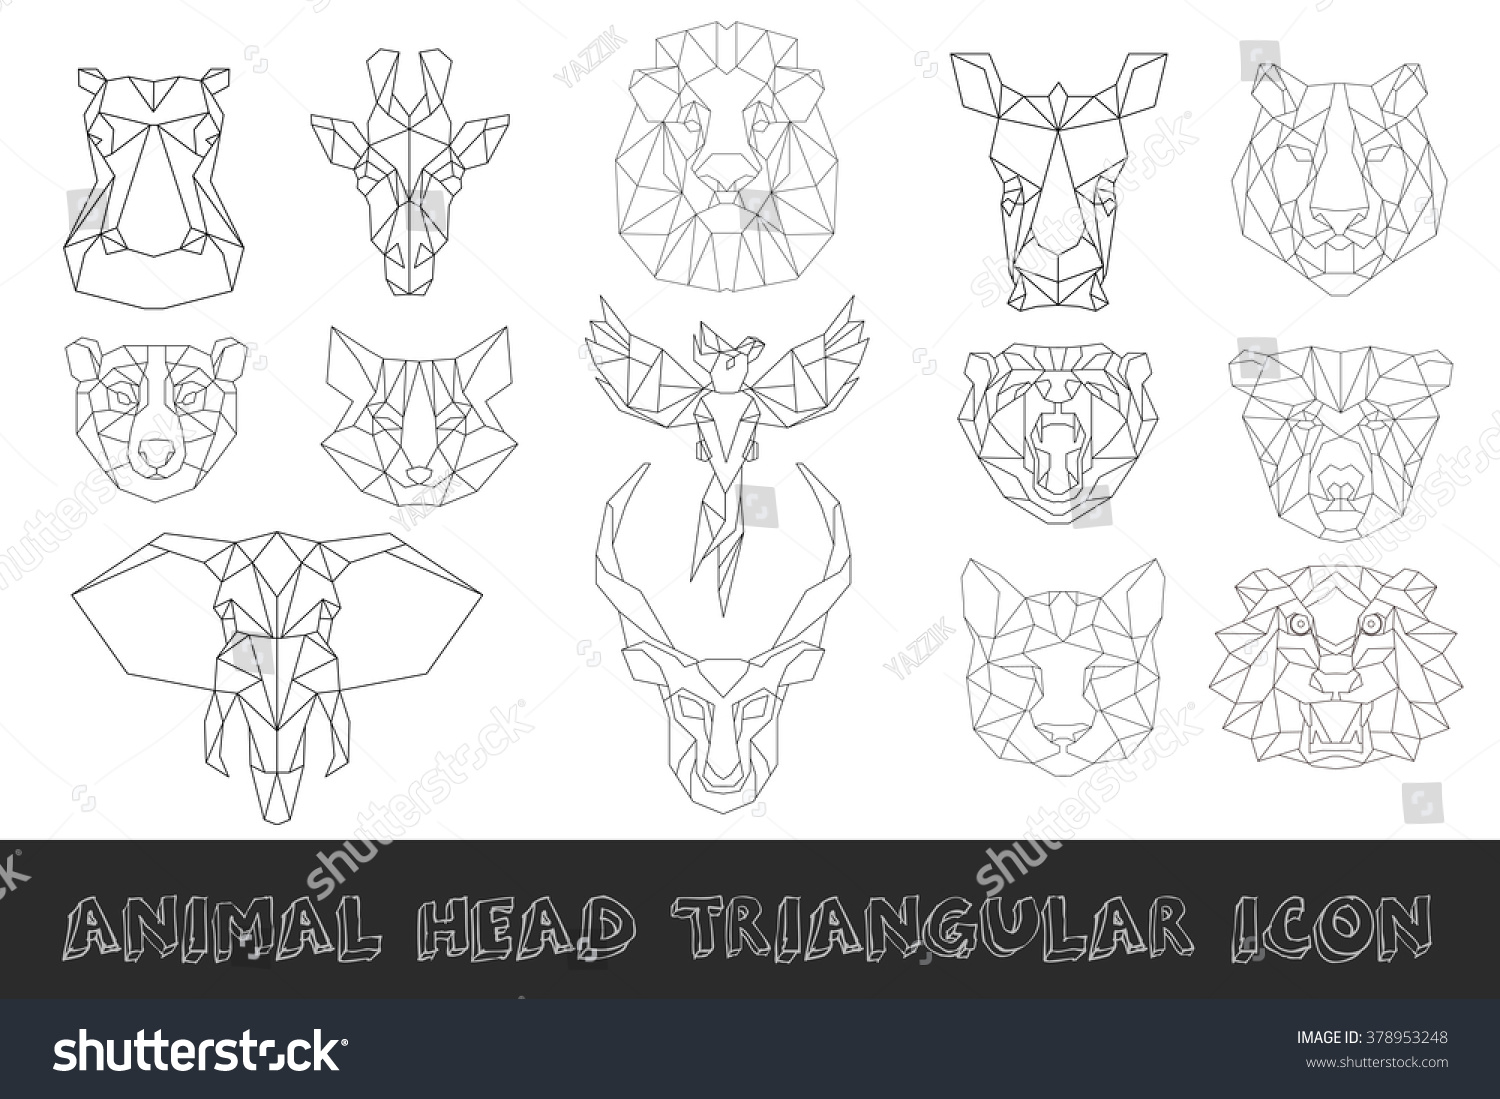 Tiger head triangular icon geometric trendy stock vector image - Front View Of Animal Head Triangular Icon Set Geometric Trendy Line Design Vector Illustration